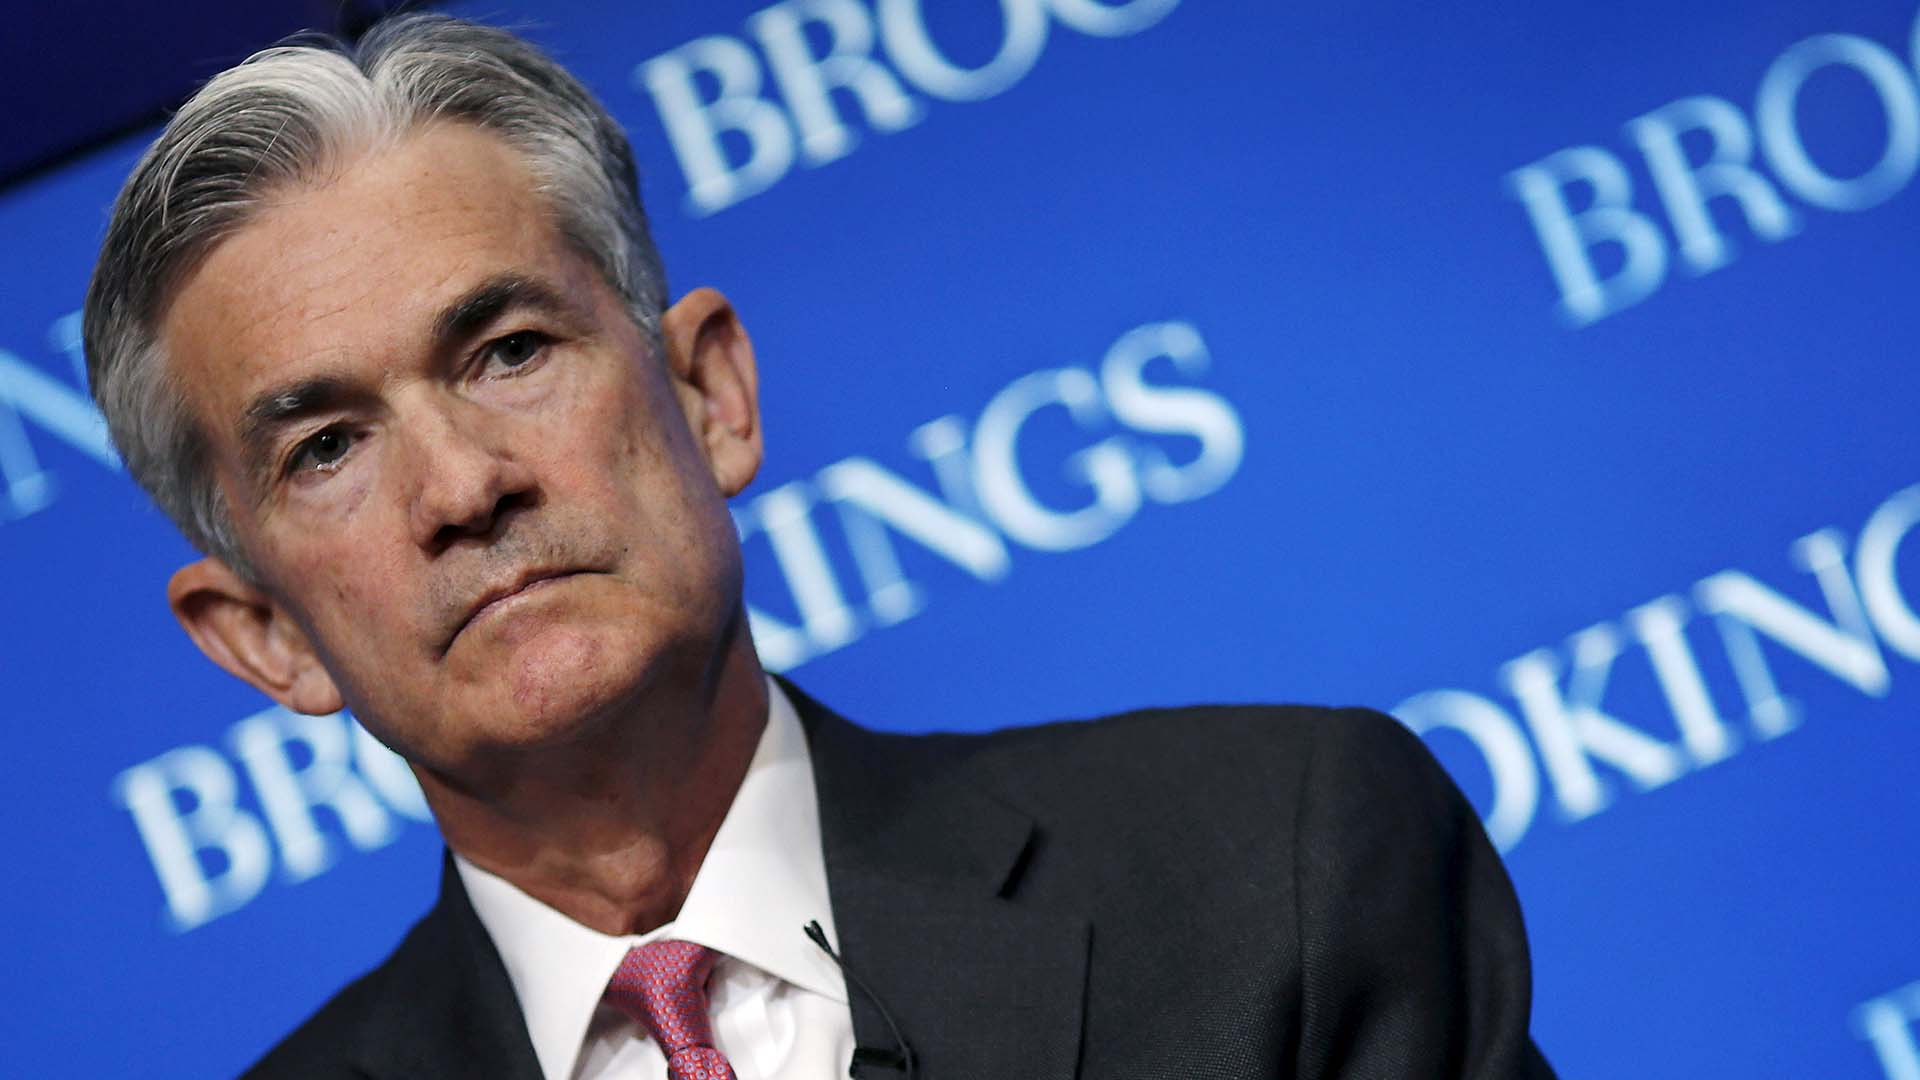 Jerome Powell, presidente de la Reserva Federal de EEUU. (REUTERS)